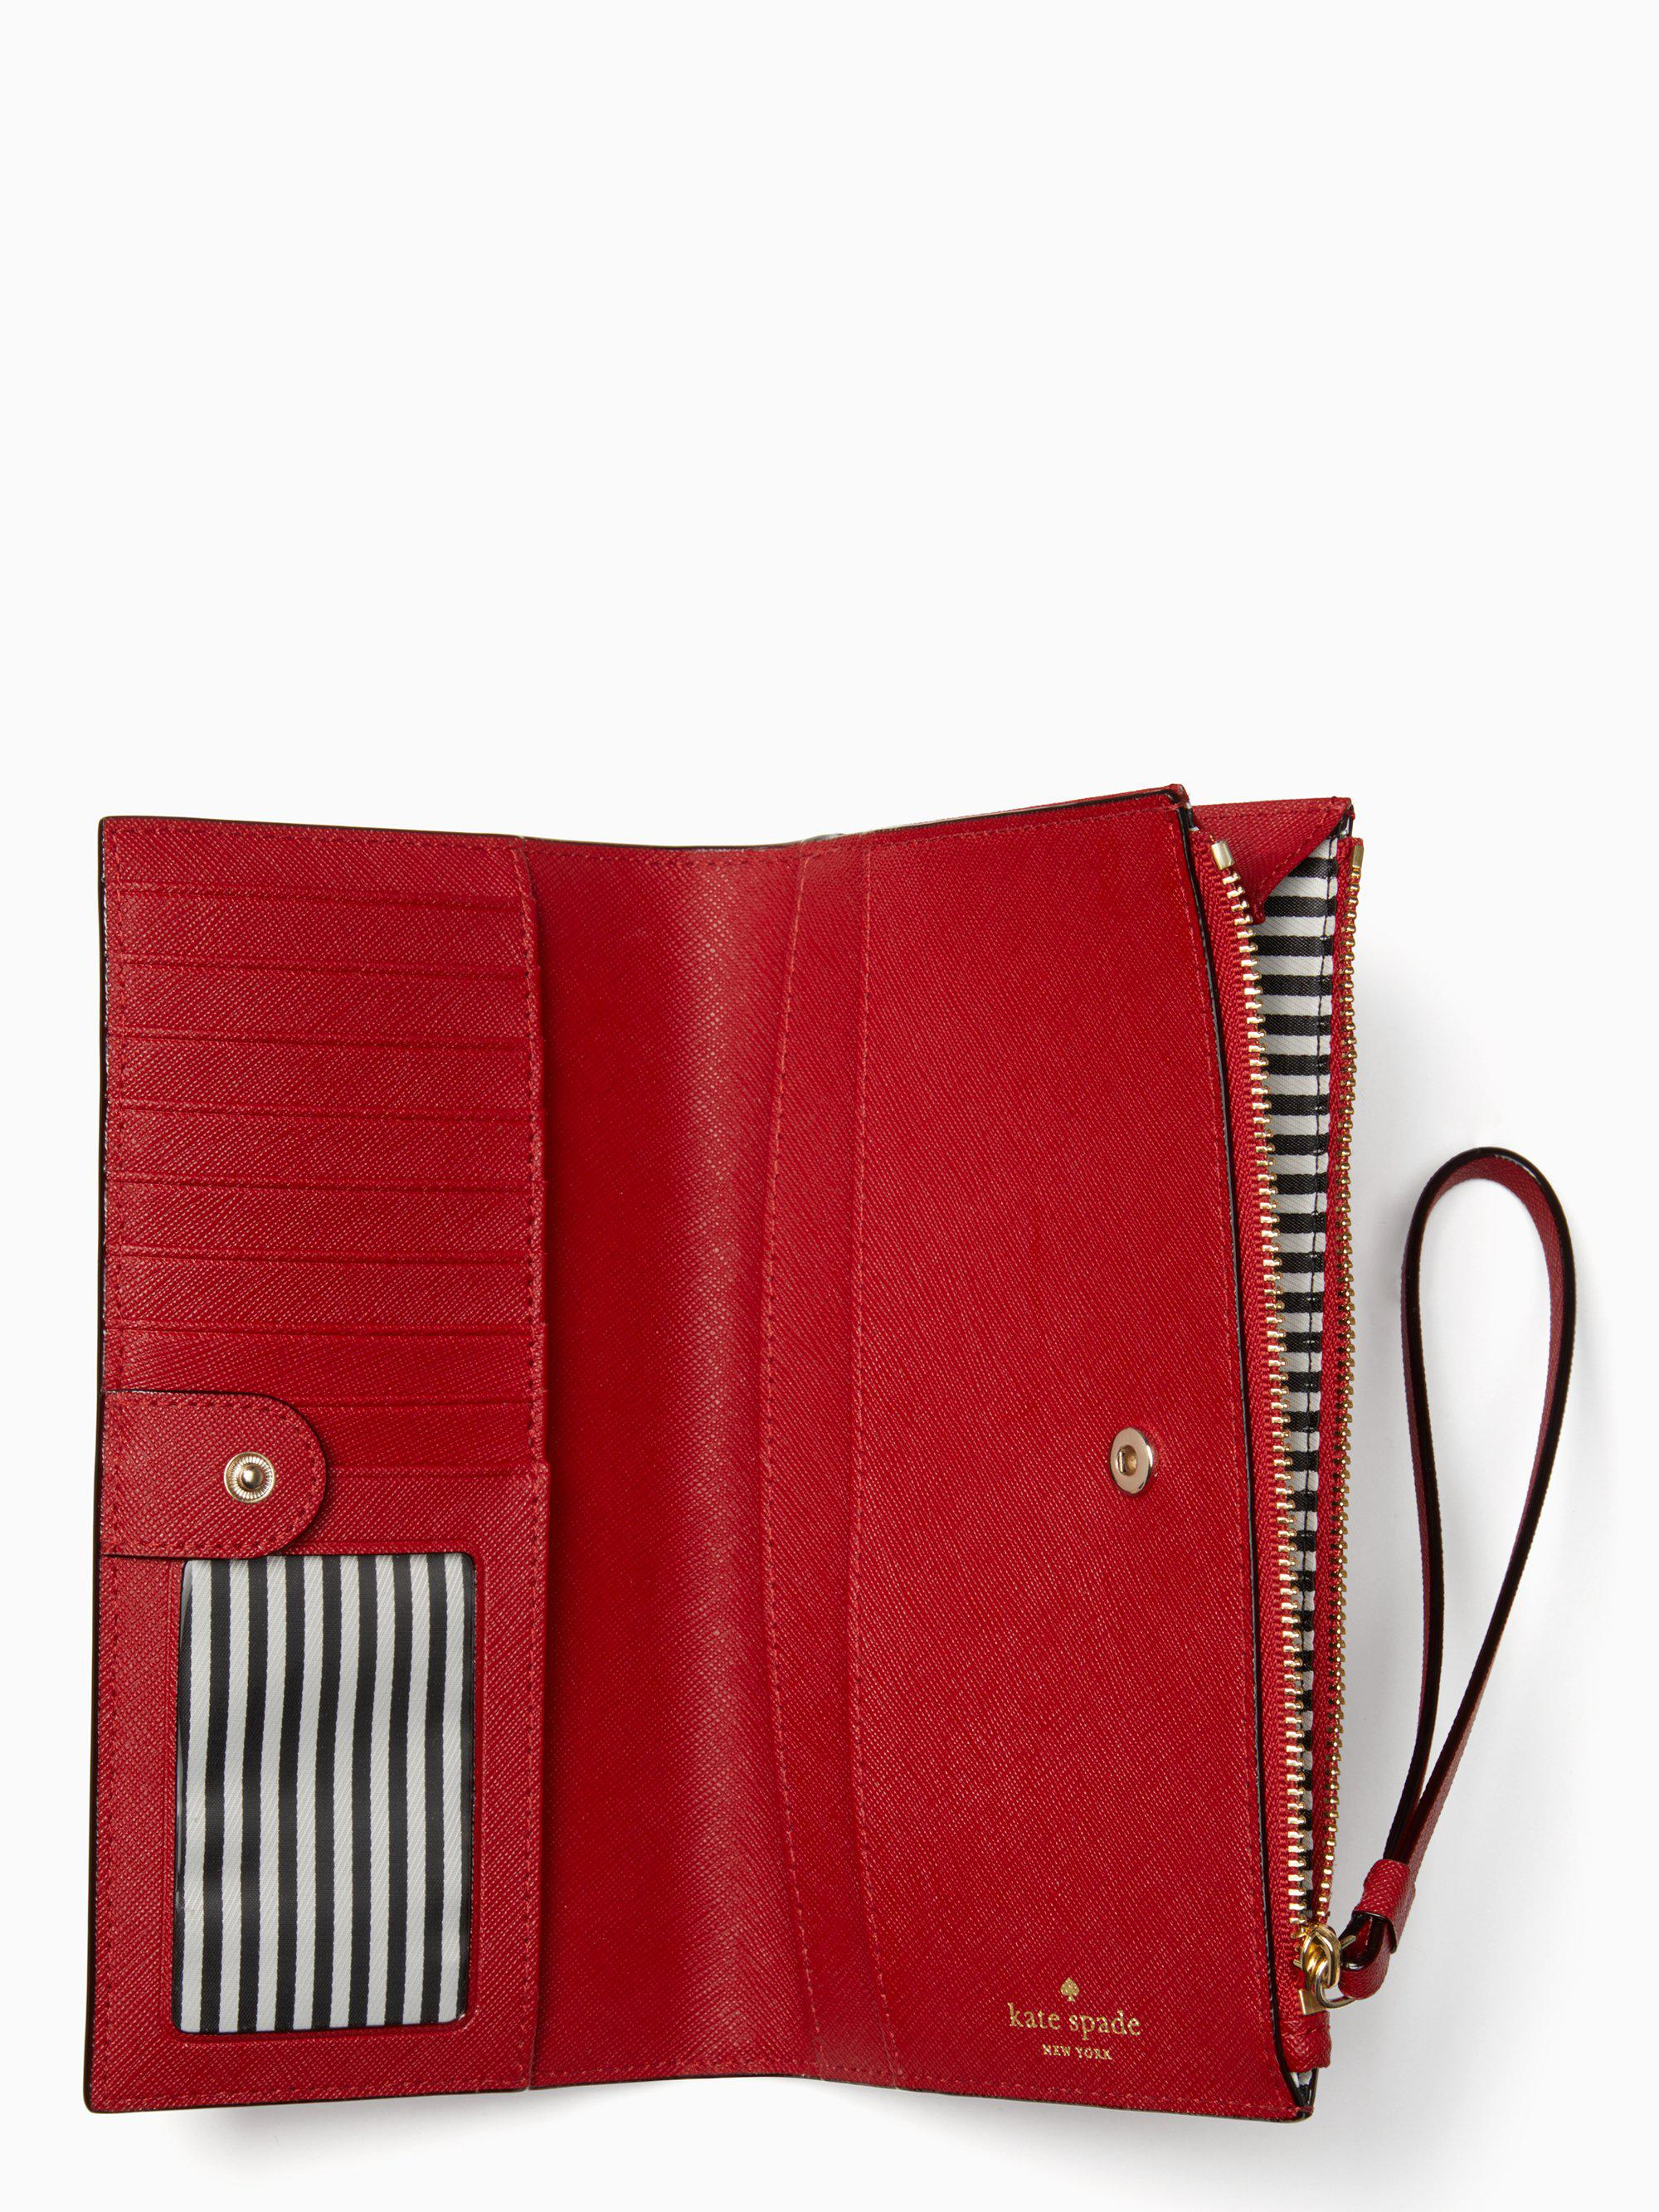 Kate Spade Leather Cameron Street Eliza in Anthracite (Red) - Lyst